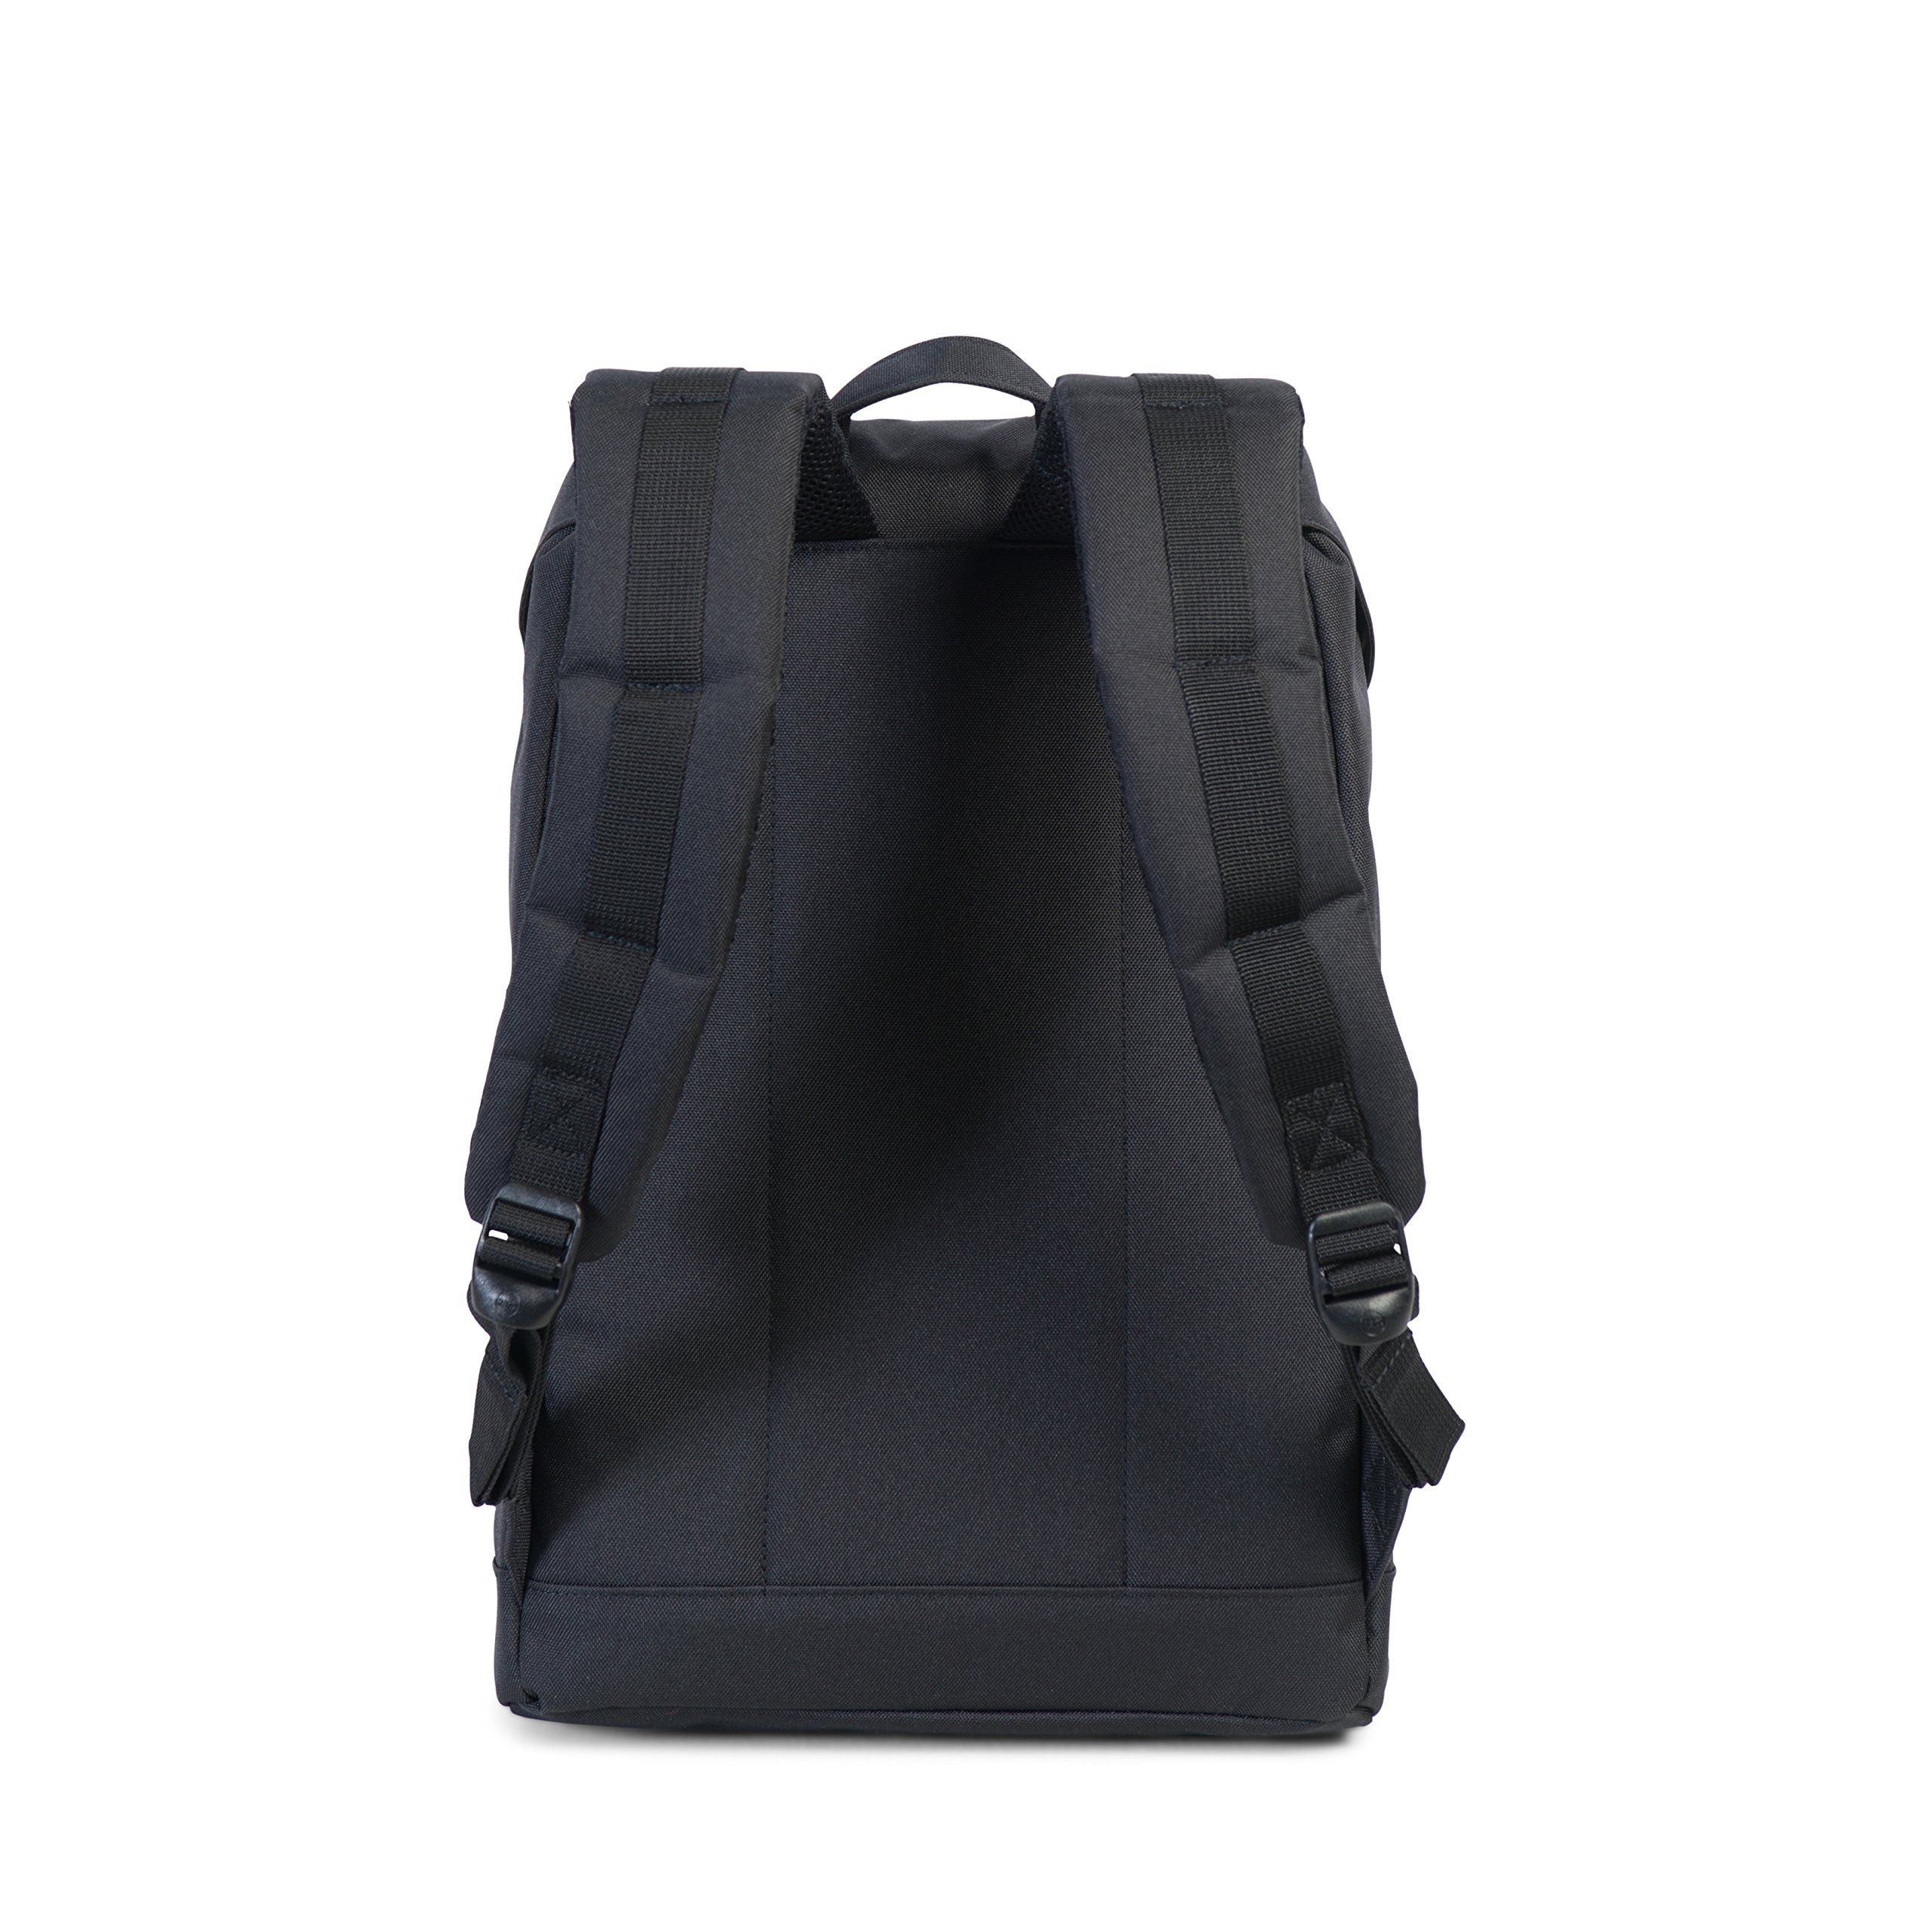 a5d35c6517e6 Herschel Supply Co. Retreat MidVolume Backpack Black Tan Synthetic Leather      Want